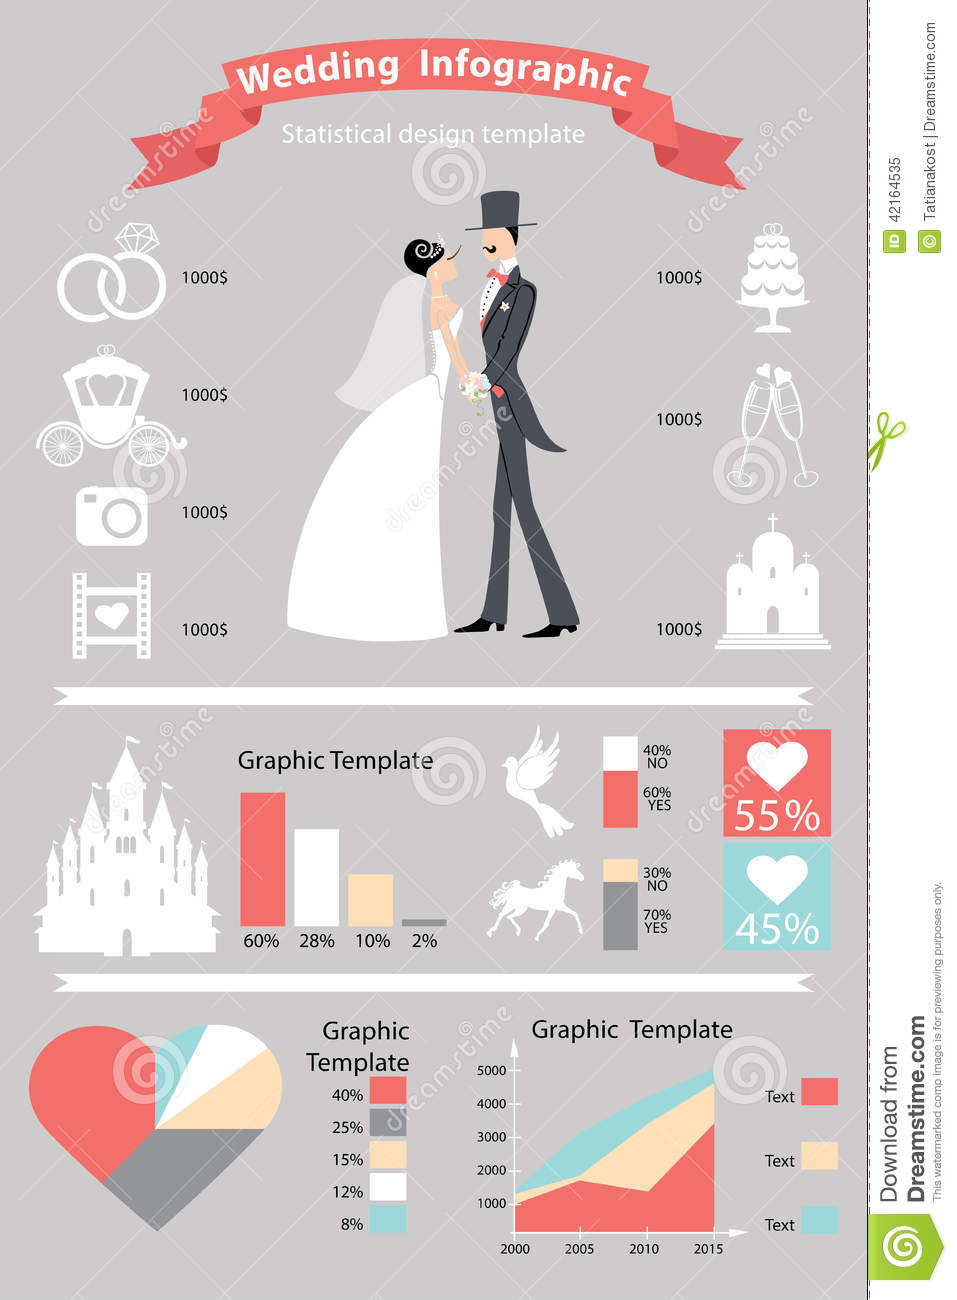 Wedding Infographics SetCute Cartoon Groom And Bride With Icons In Retro Style Statistical Design Template